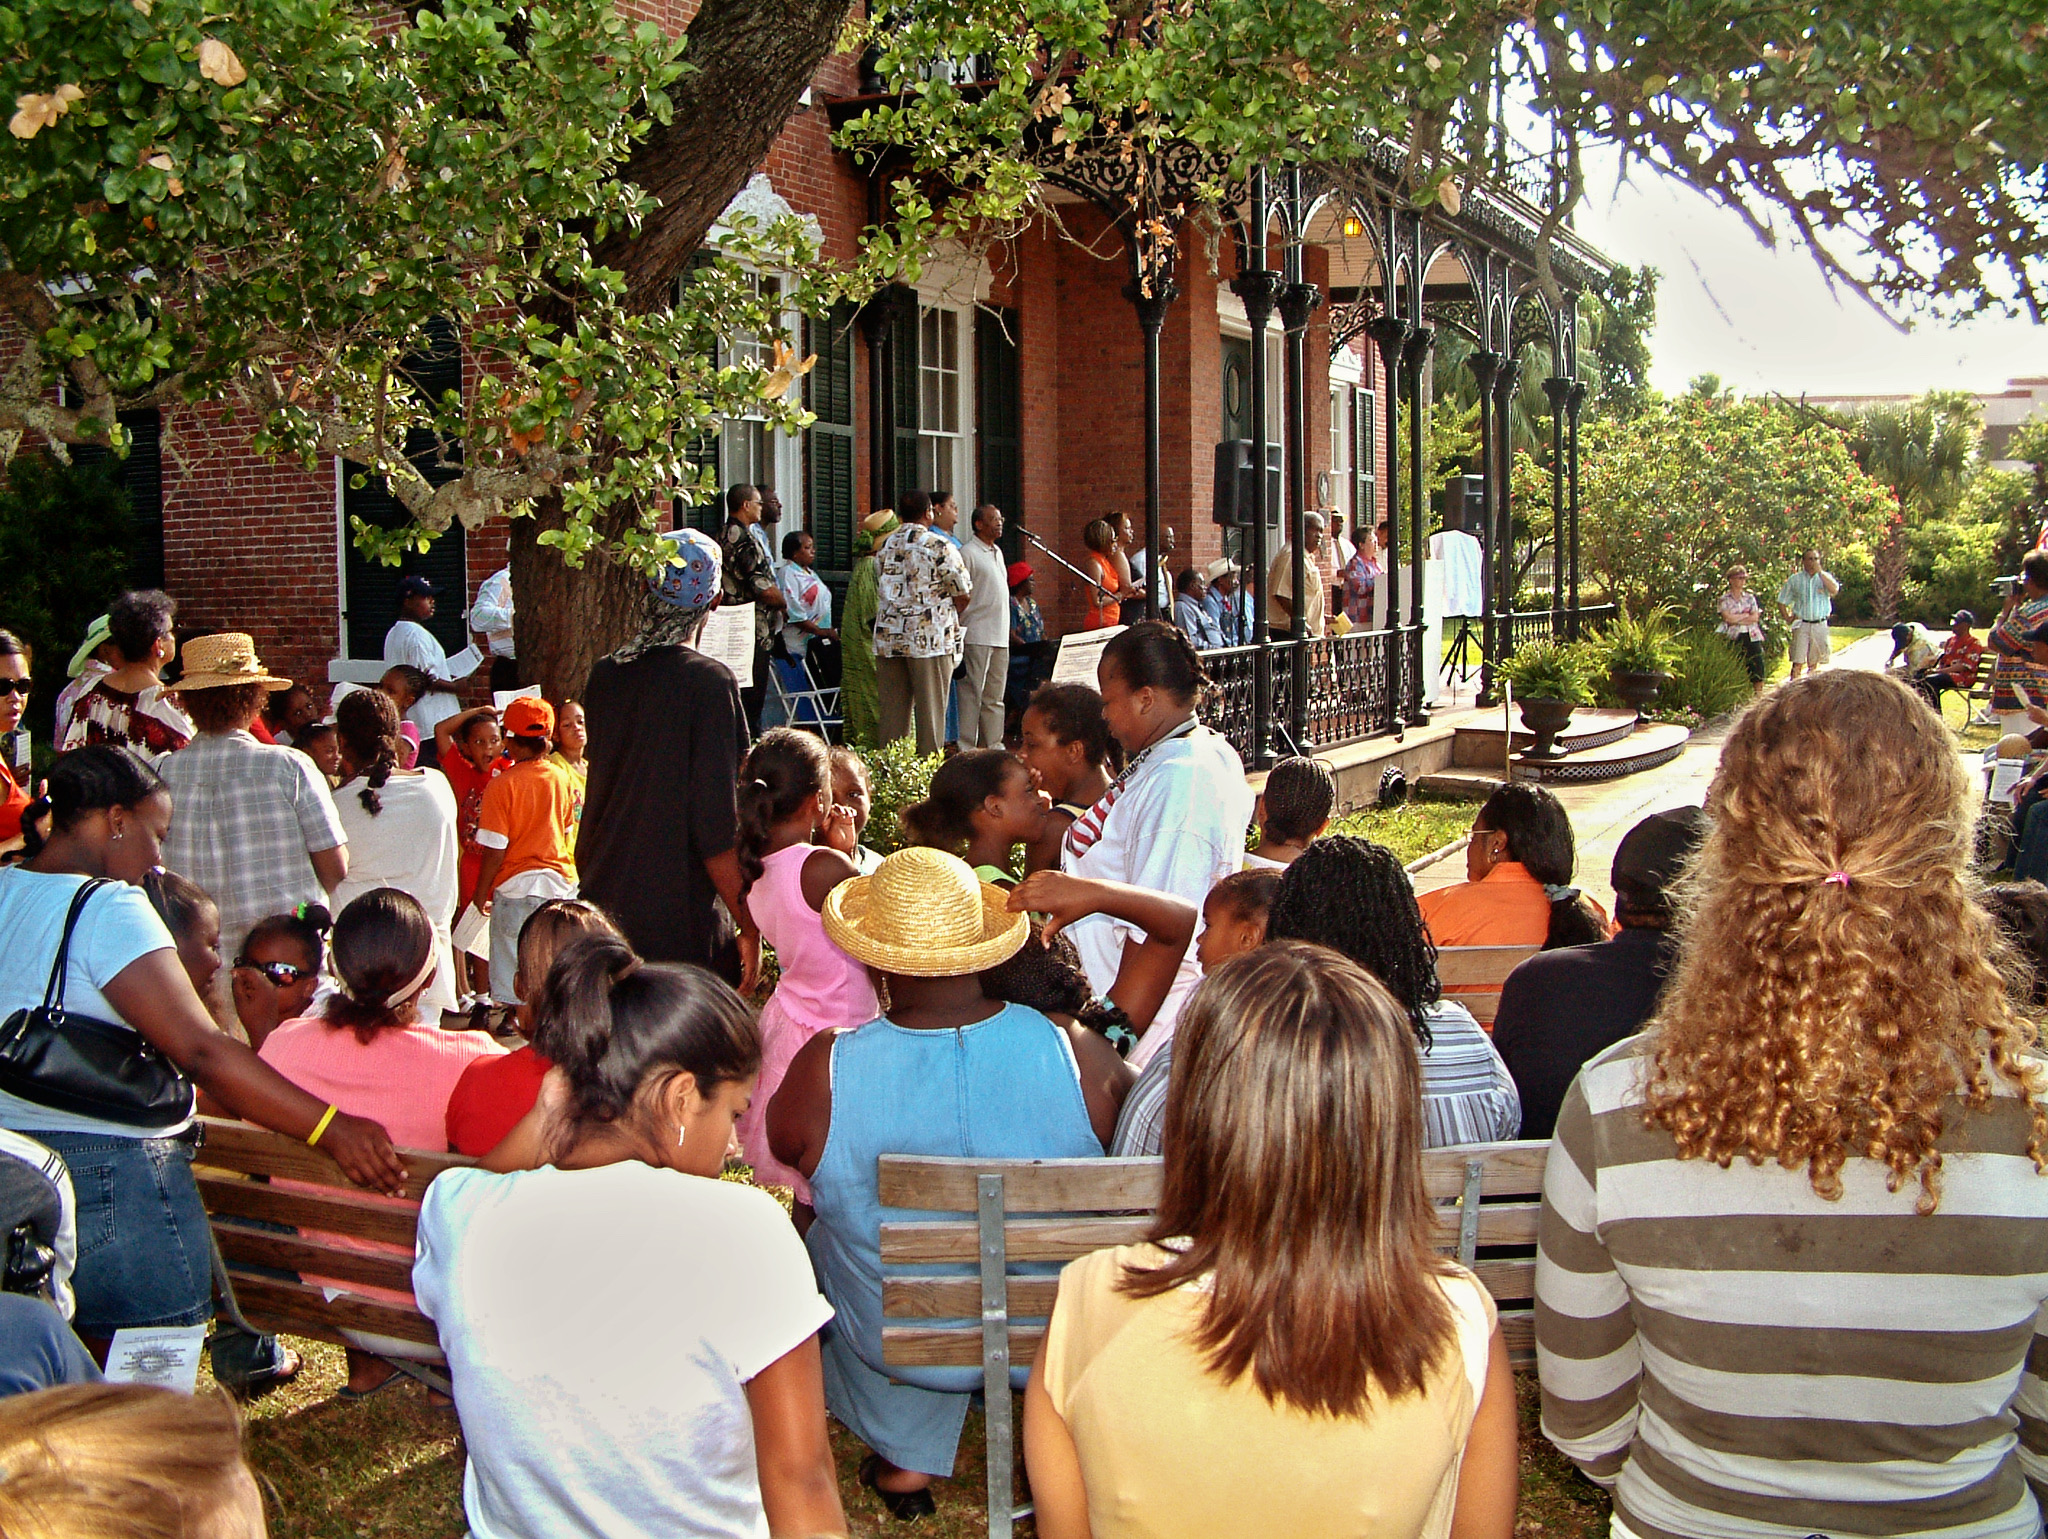 Juneteenth Commemoration at the 1859 Ashton Villa